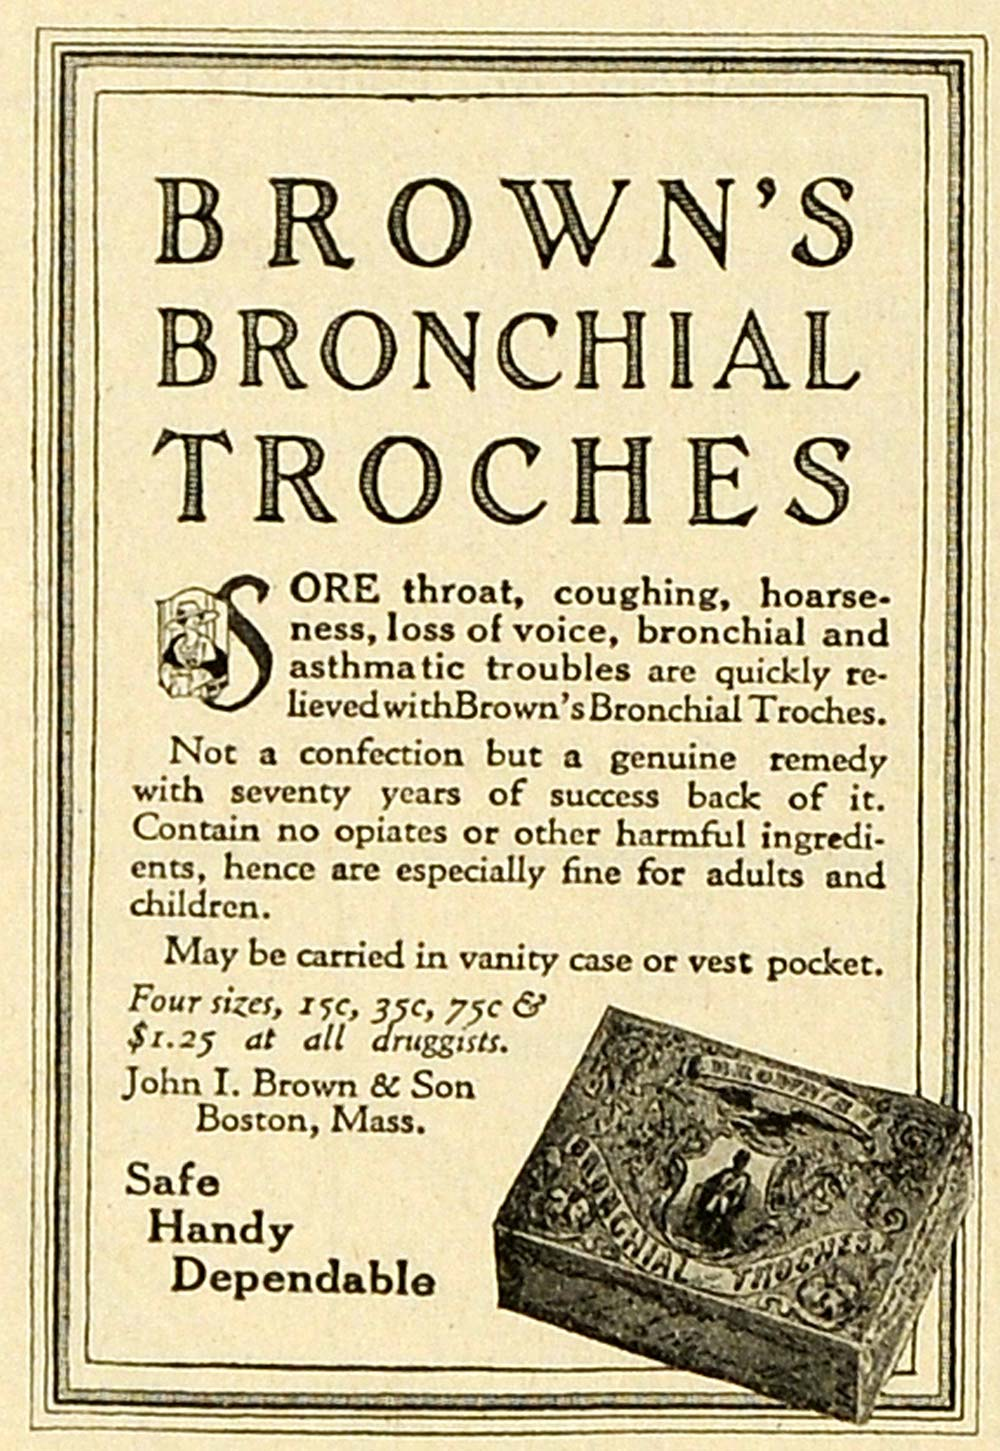 1919 Ad Brown's Bronchial Troches Sore Throat Remedy Medication Vintage TMP2